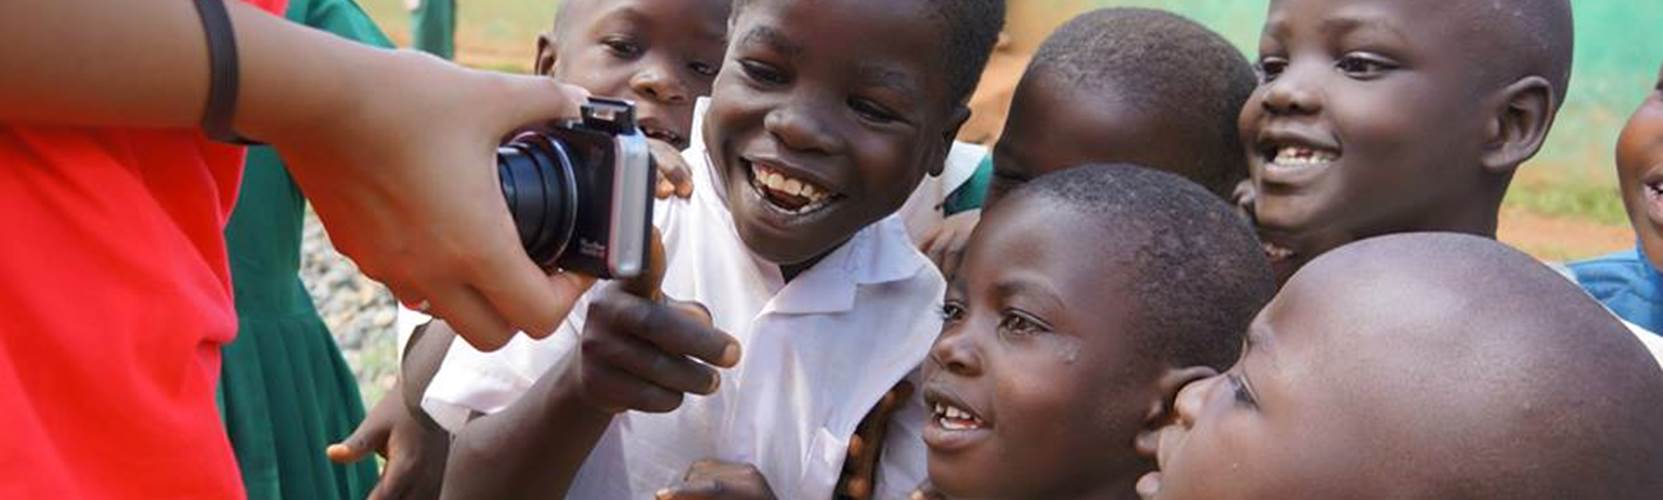 Kenya - Kids see their photo!